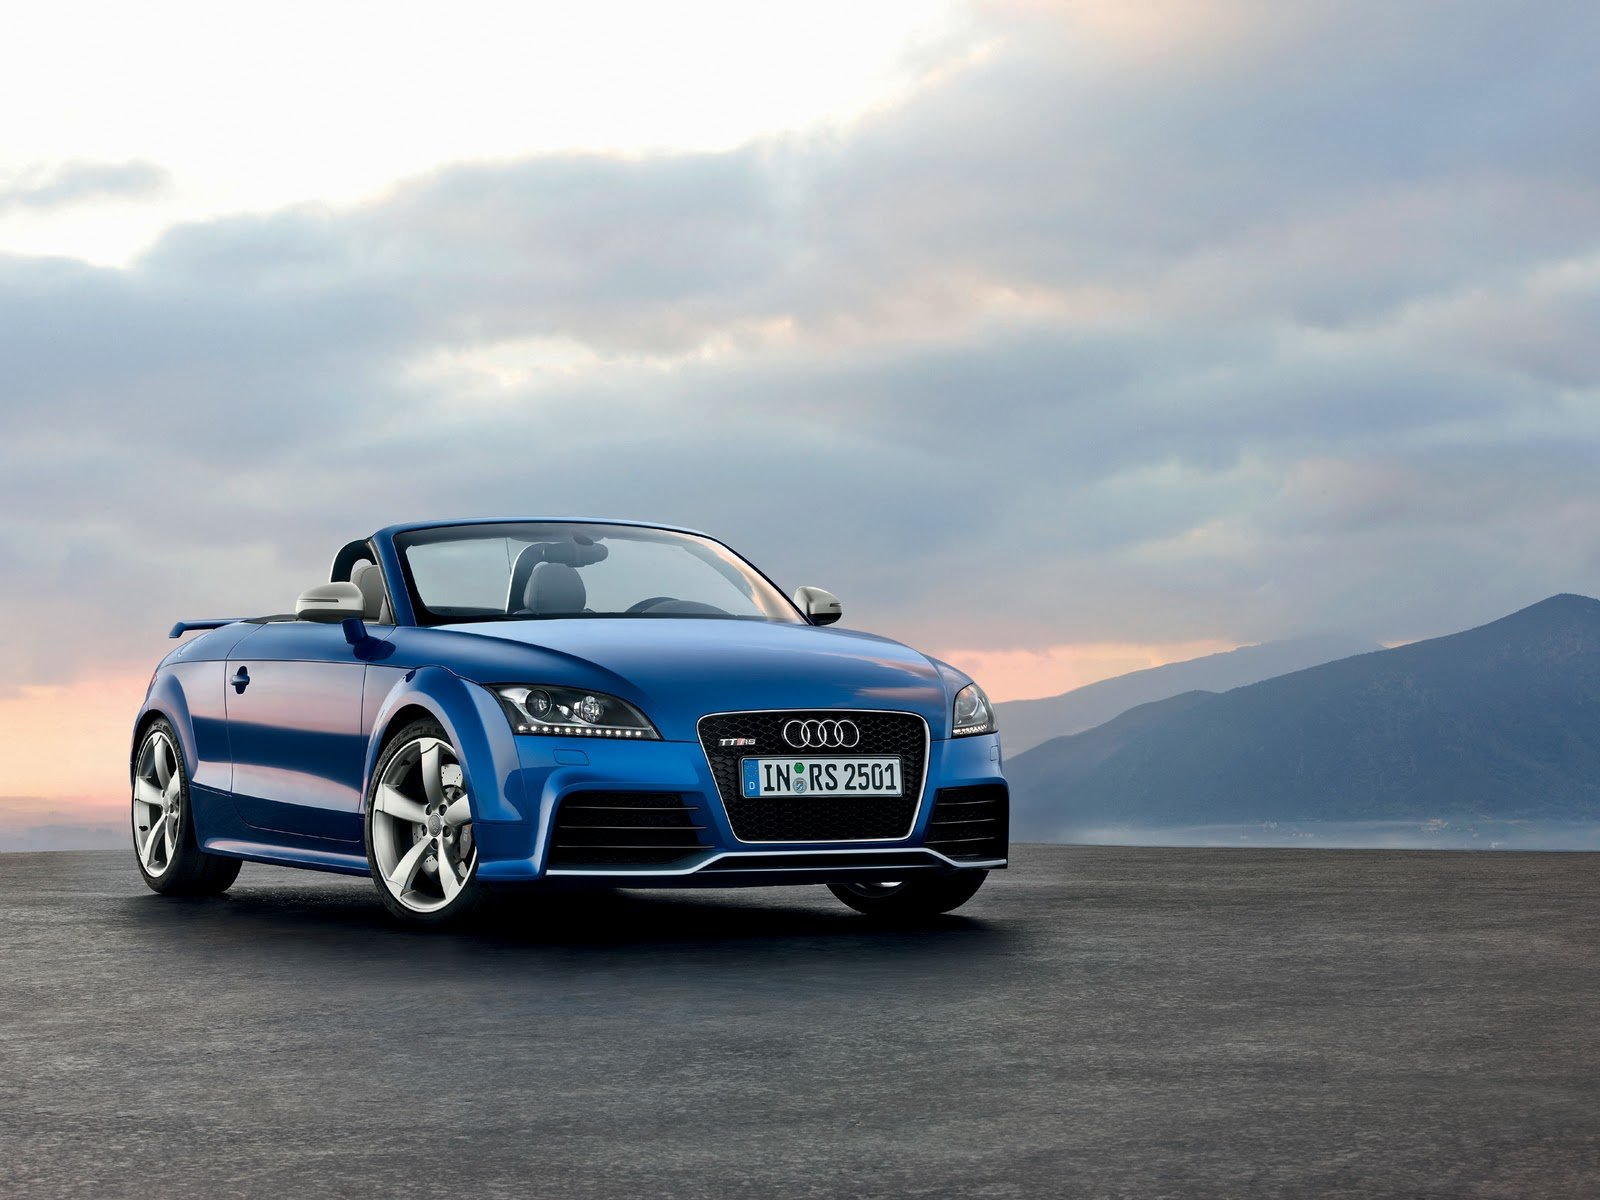 Latest Audi Car Hd Wallpaper Hd Wallpaper Free Download